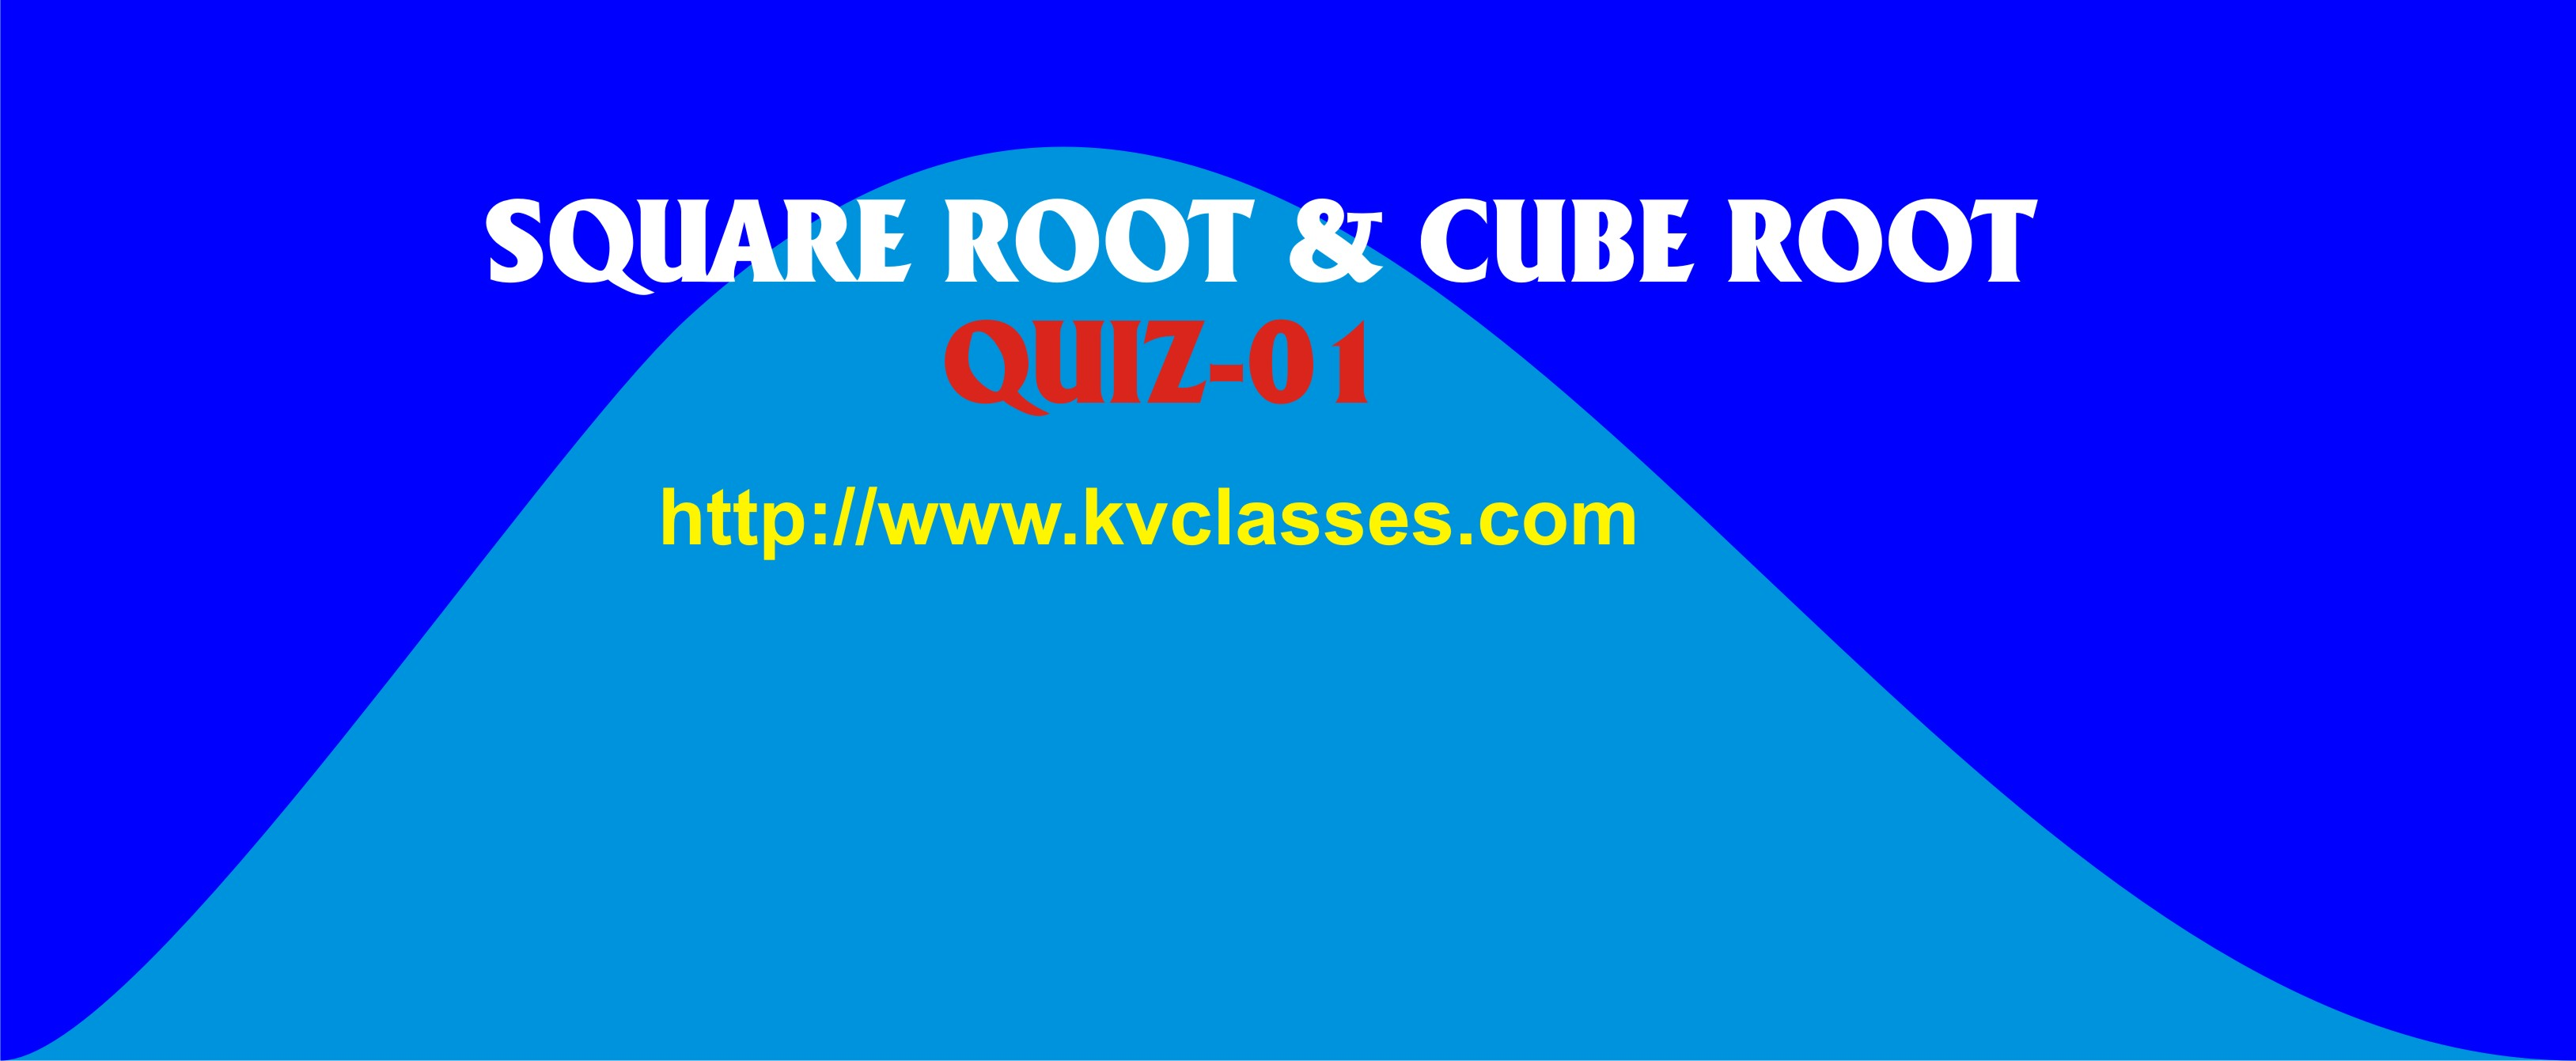 SQUARE ROOT & CUBE ROOT QUIZ test Archives - KVClasses